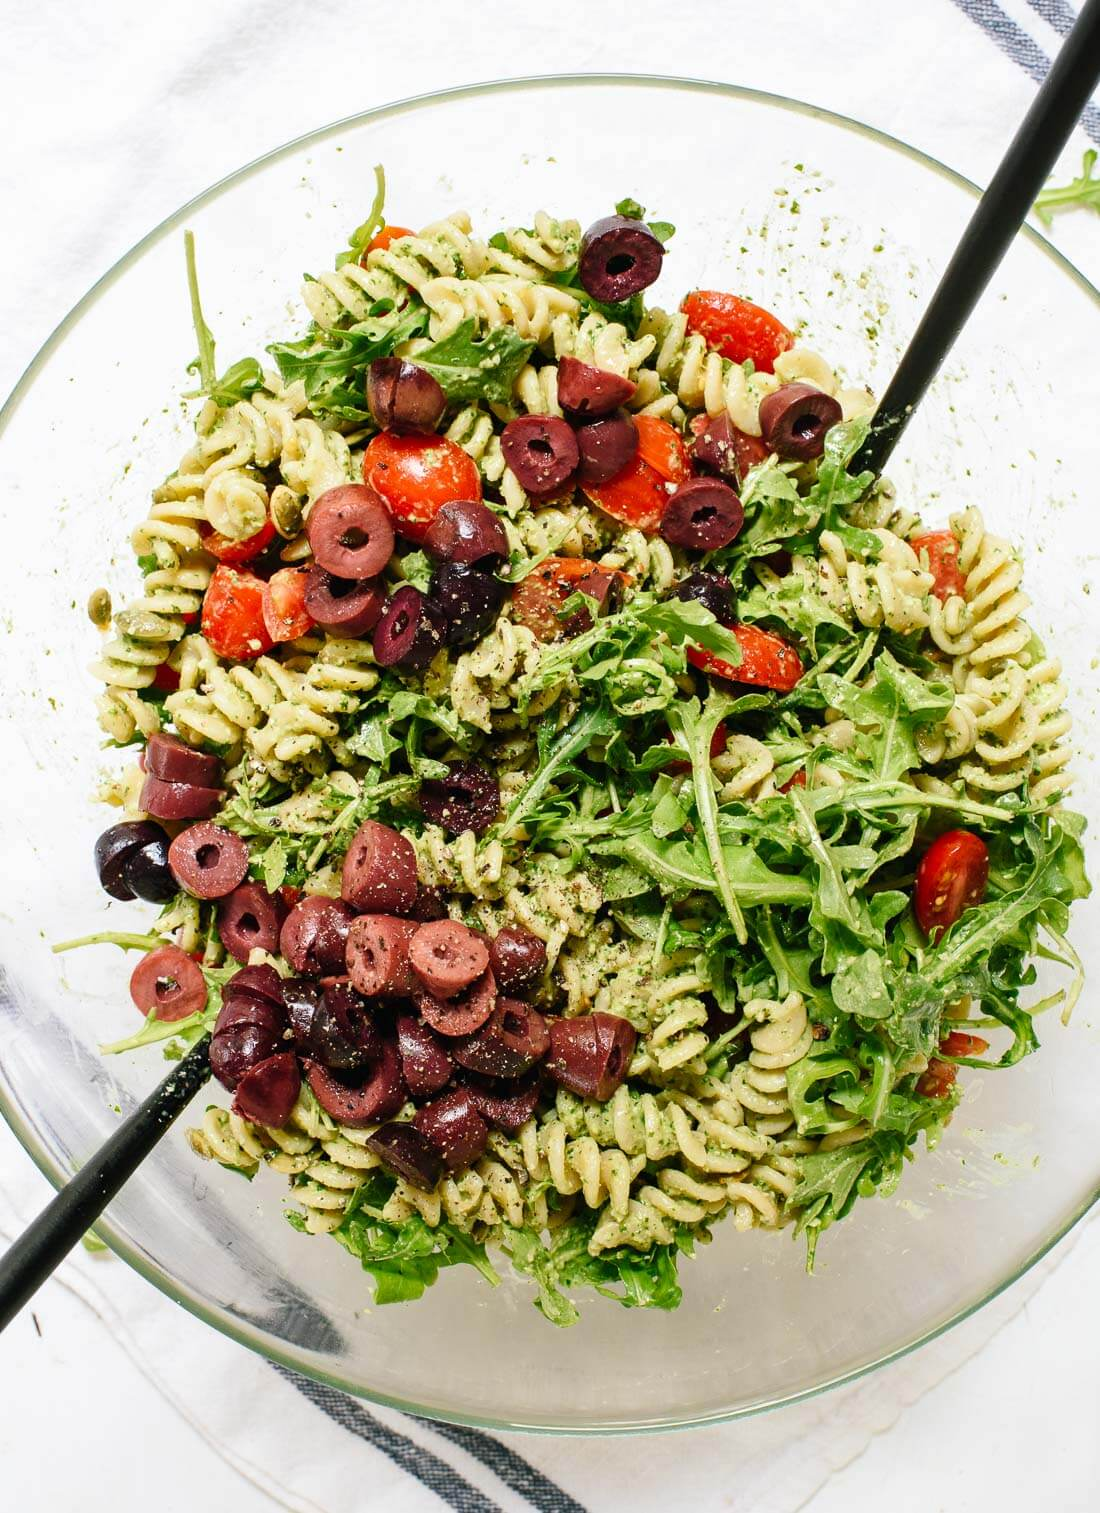 Easy healthy pesto pasta recipes